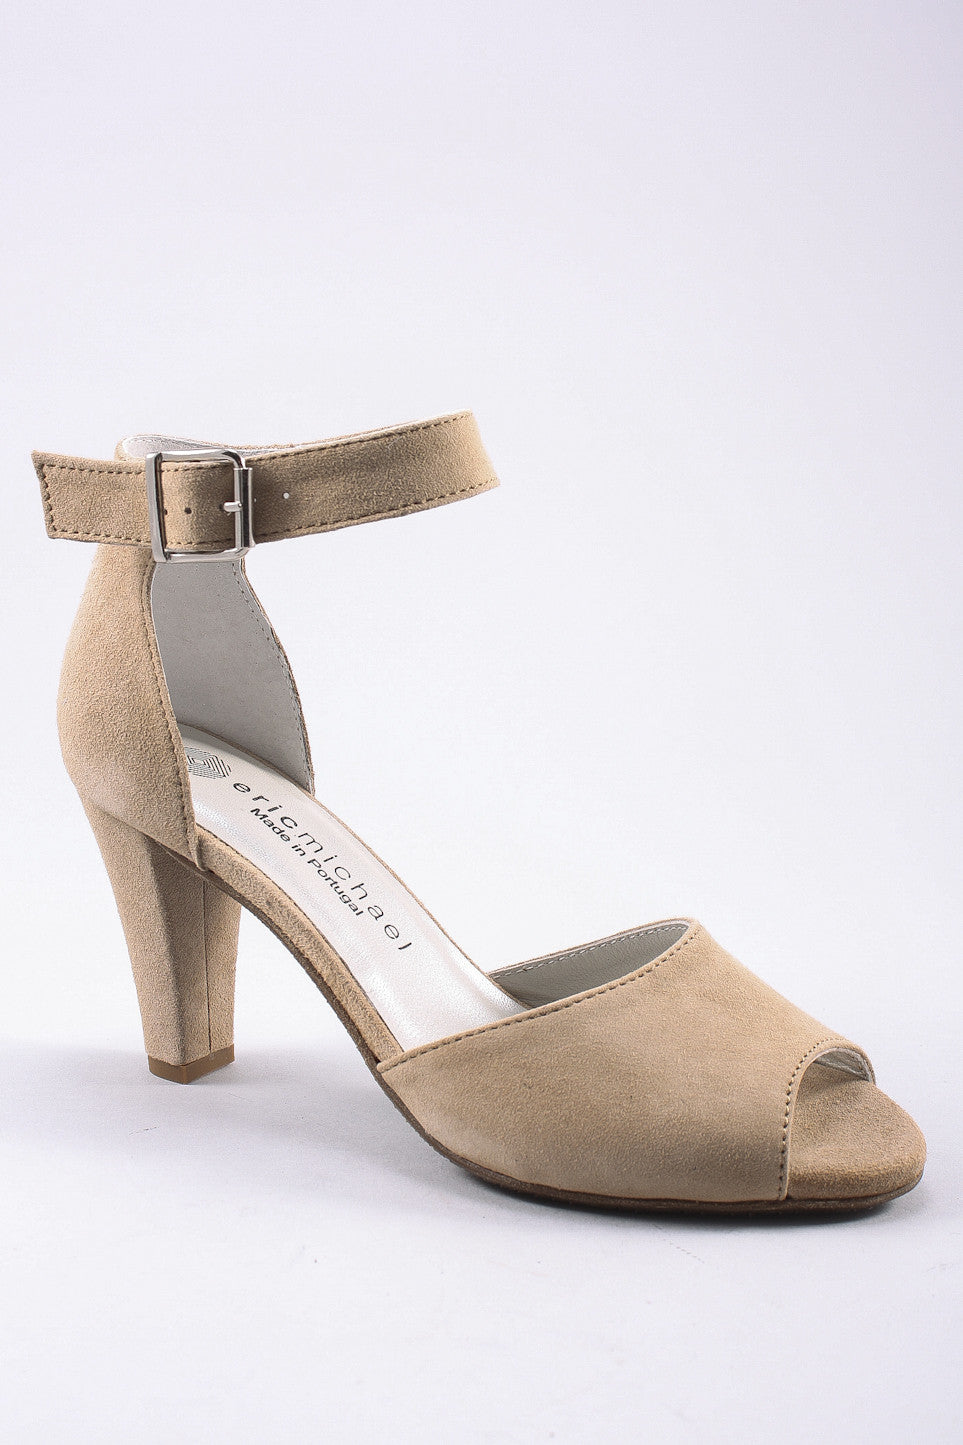 Kingston Open Toe Heel in Ice